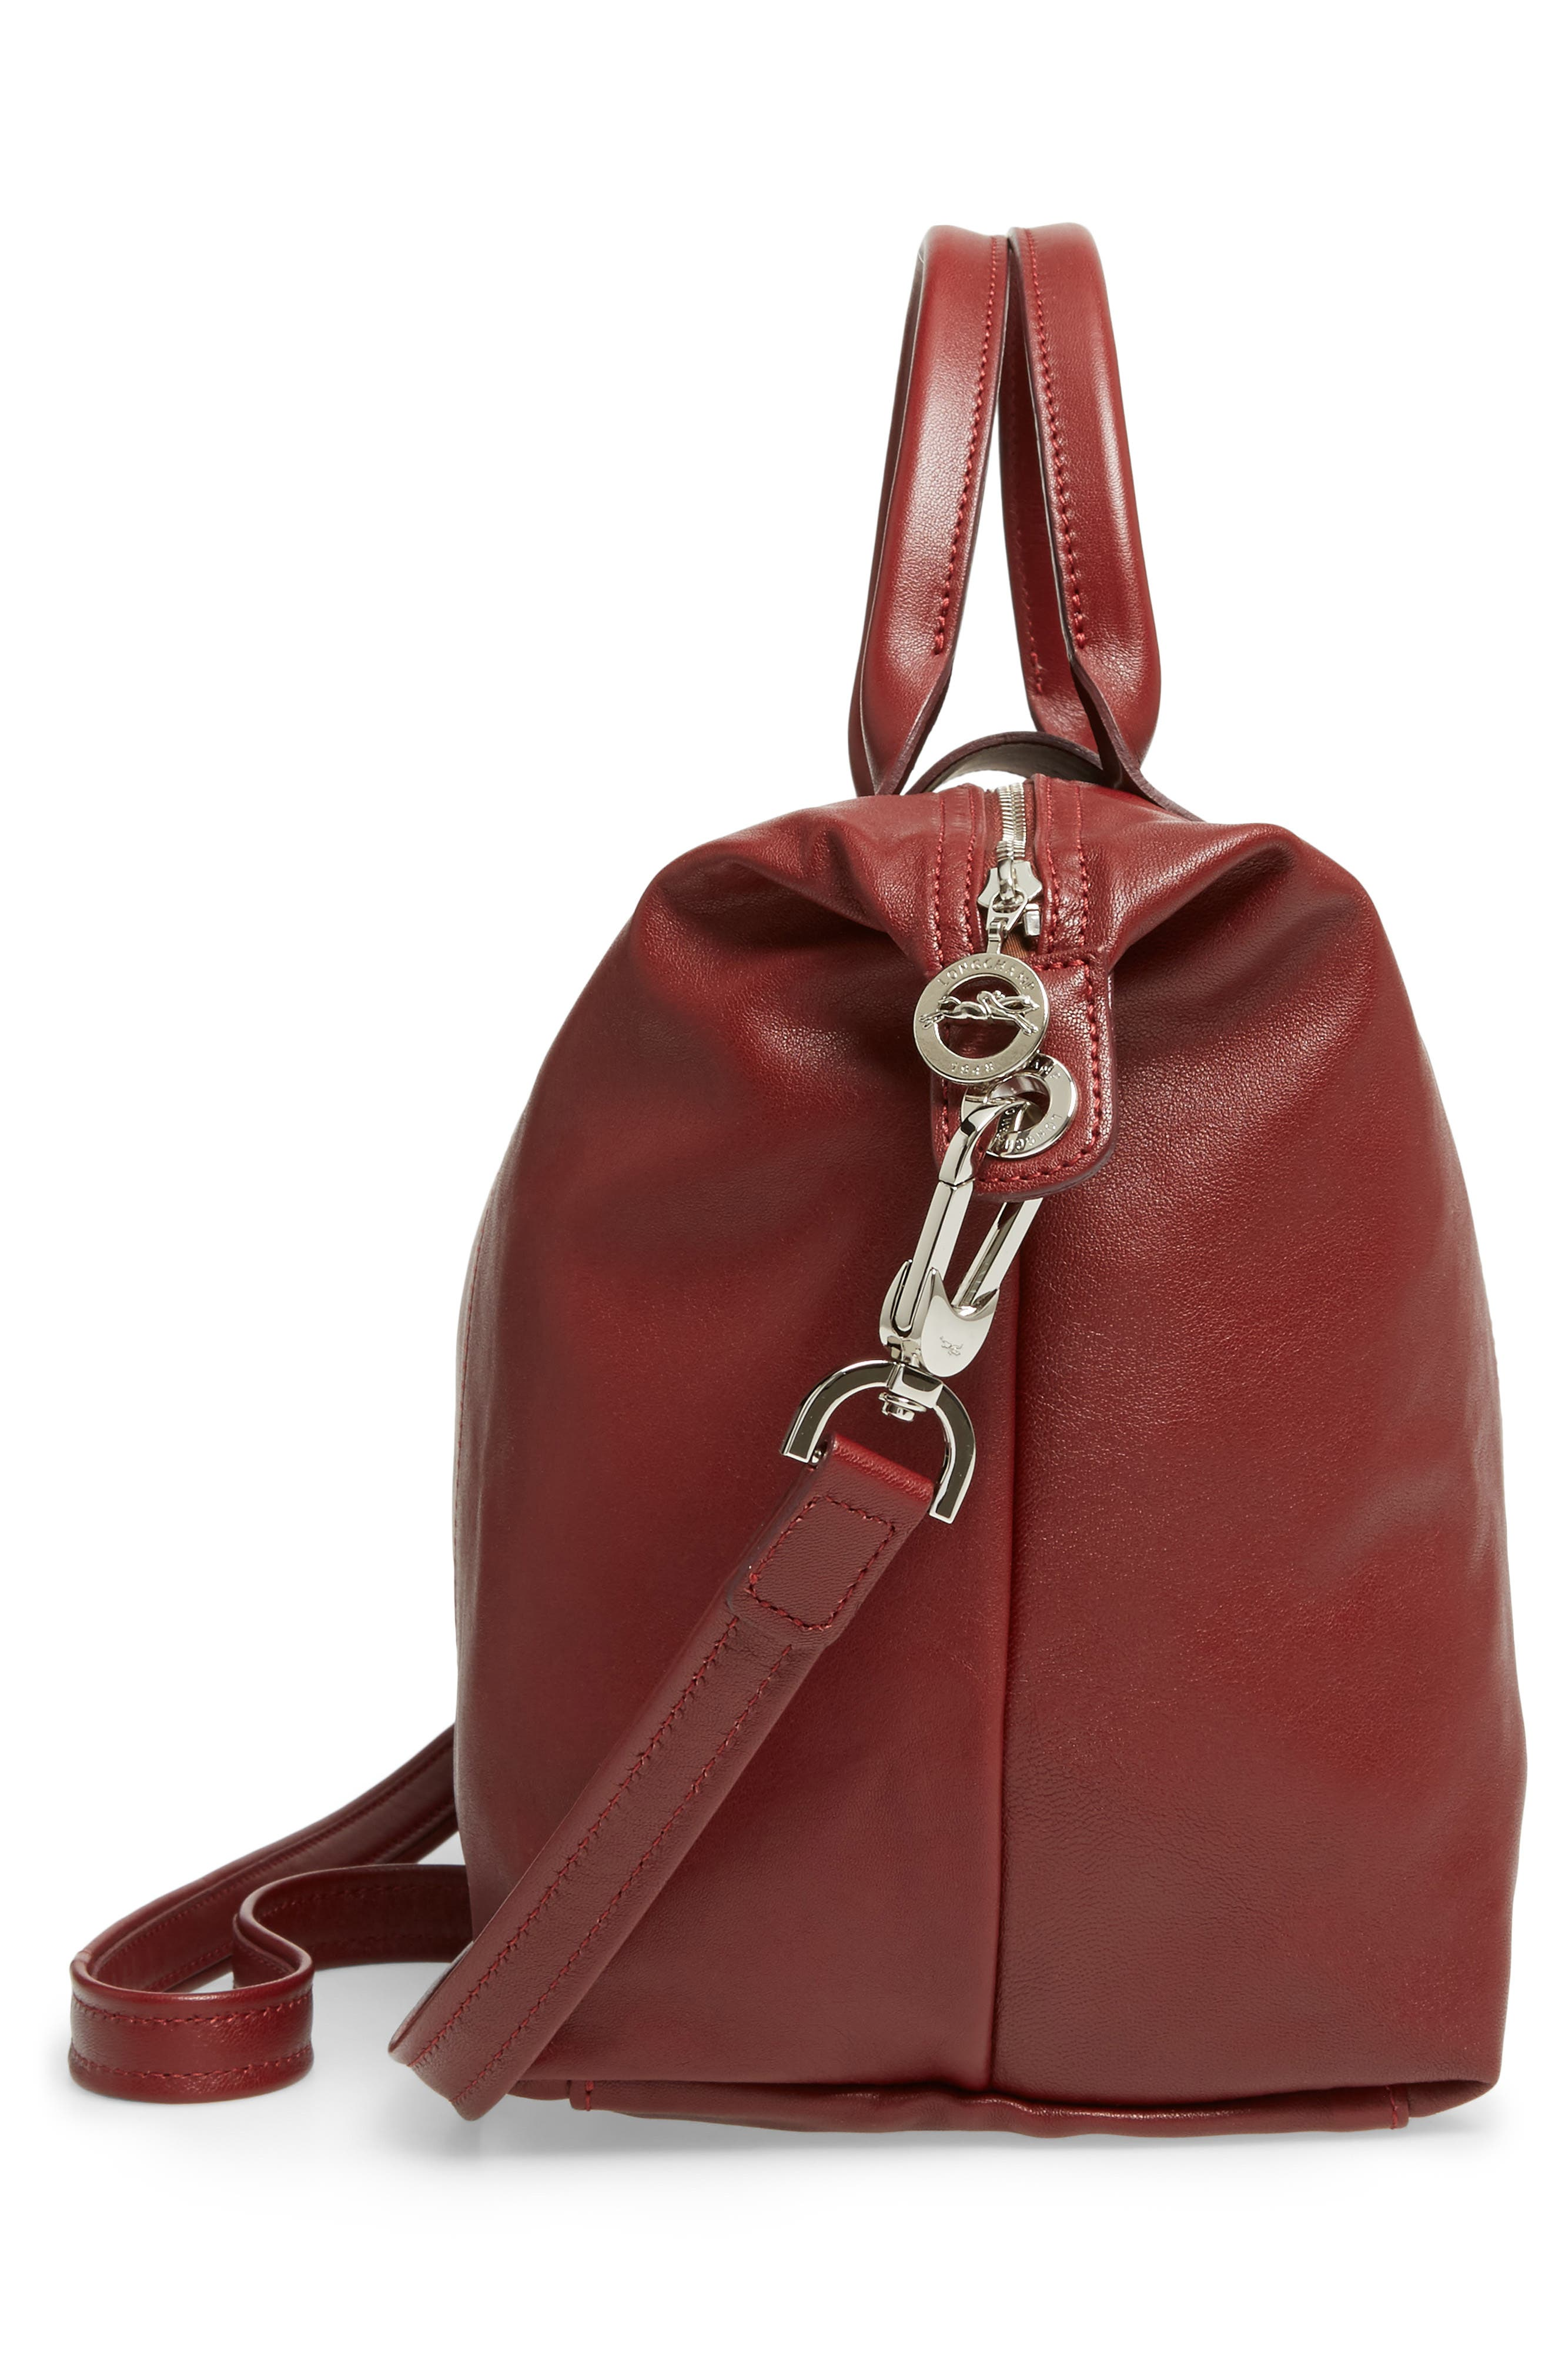 Medium 'Le Pliage Cuir' Leather Top Handle Tote,                             Alternate thumbnail 99, color,